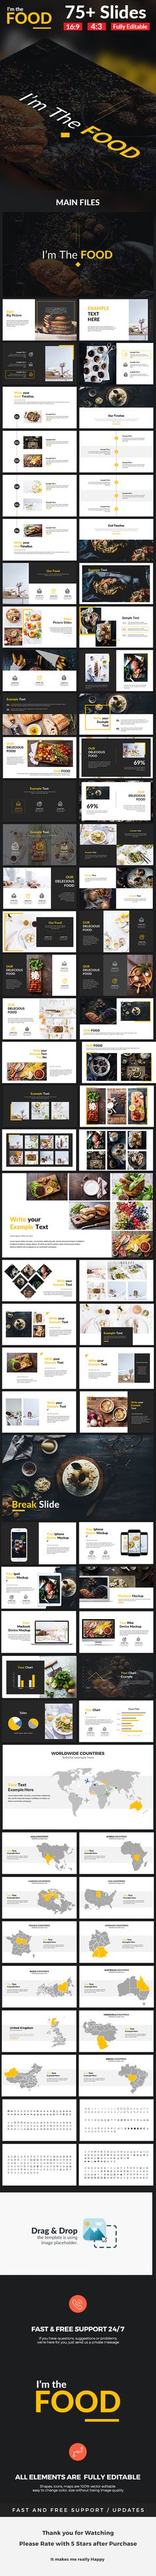 I'm The Food  Google Slide Template  #powerpoint presentation #infographic • Download ➝ https://graphicriver.net/item/im-the-food-google-slide-template/18542502?ref=pxcr